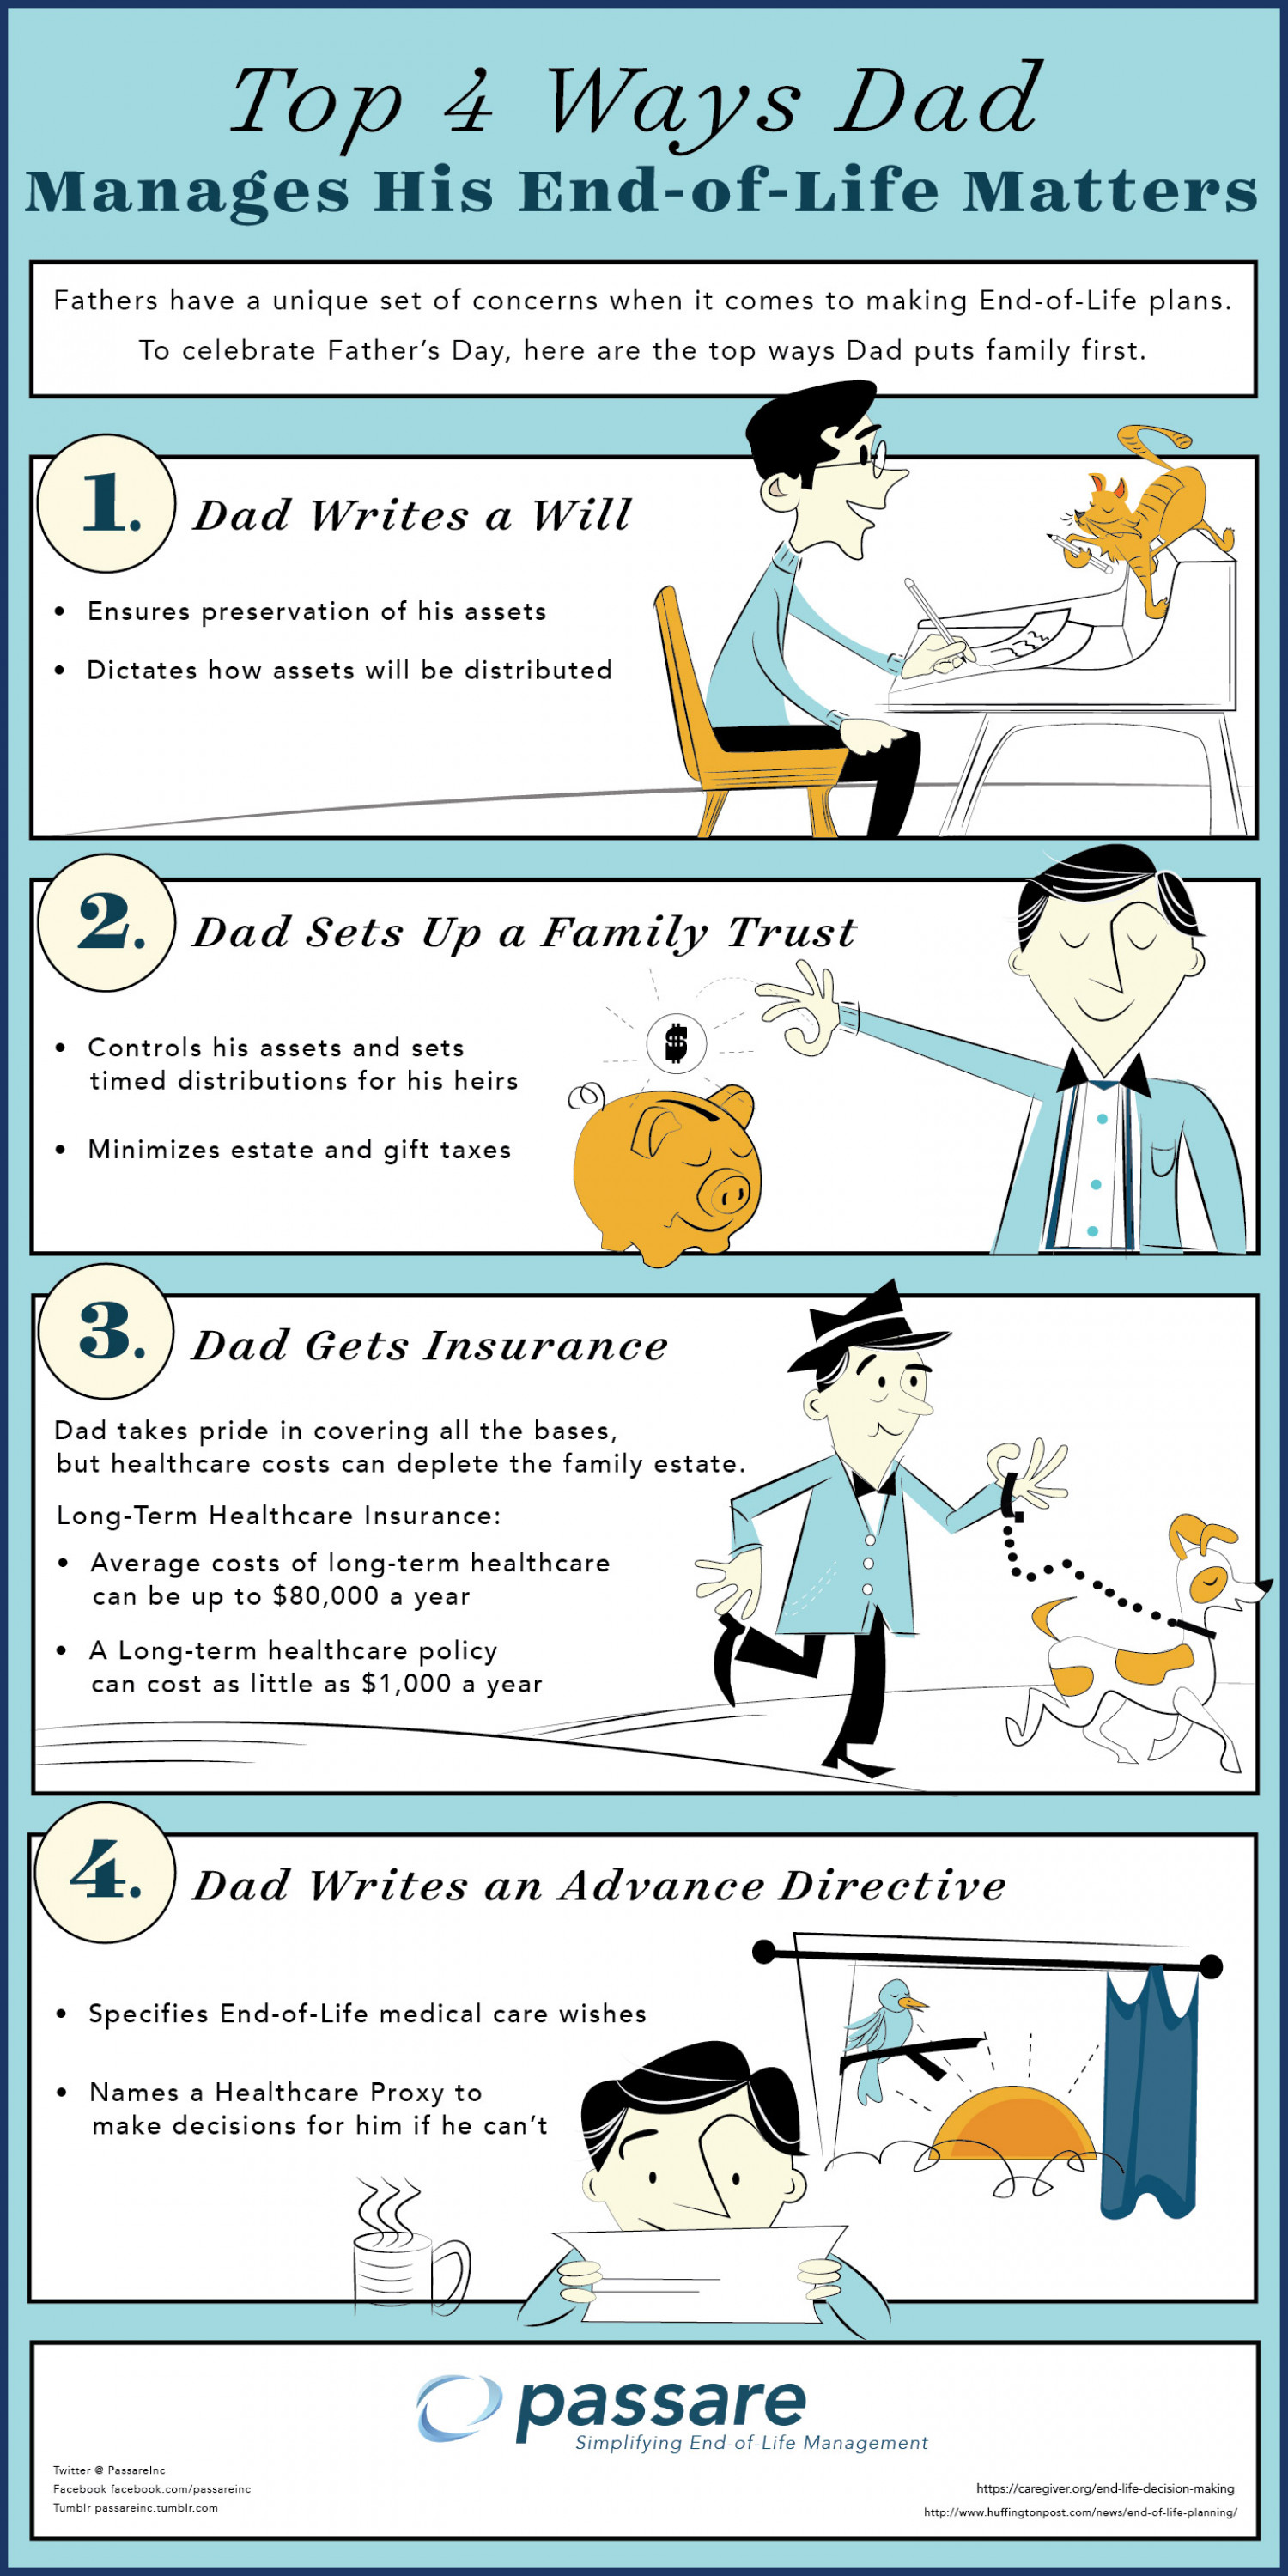 Top 4 Ways Dad Manages His End-of-Life Matters Infographic